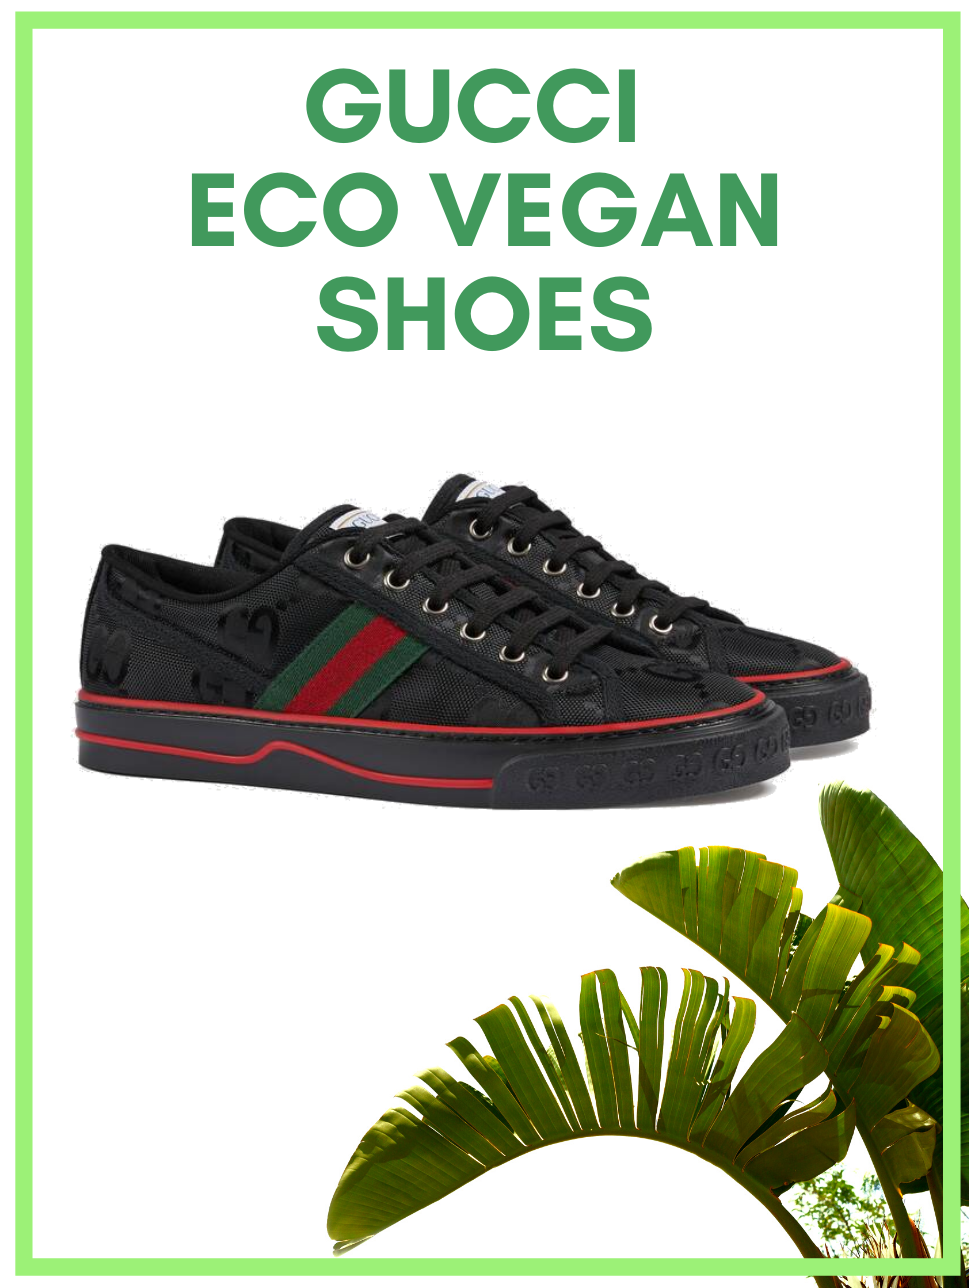 Gucci Vegan Eco-friendly Shoes in 2020